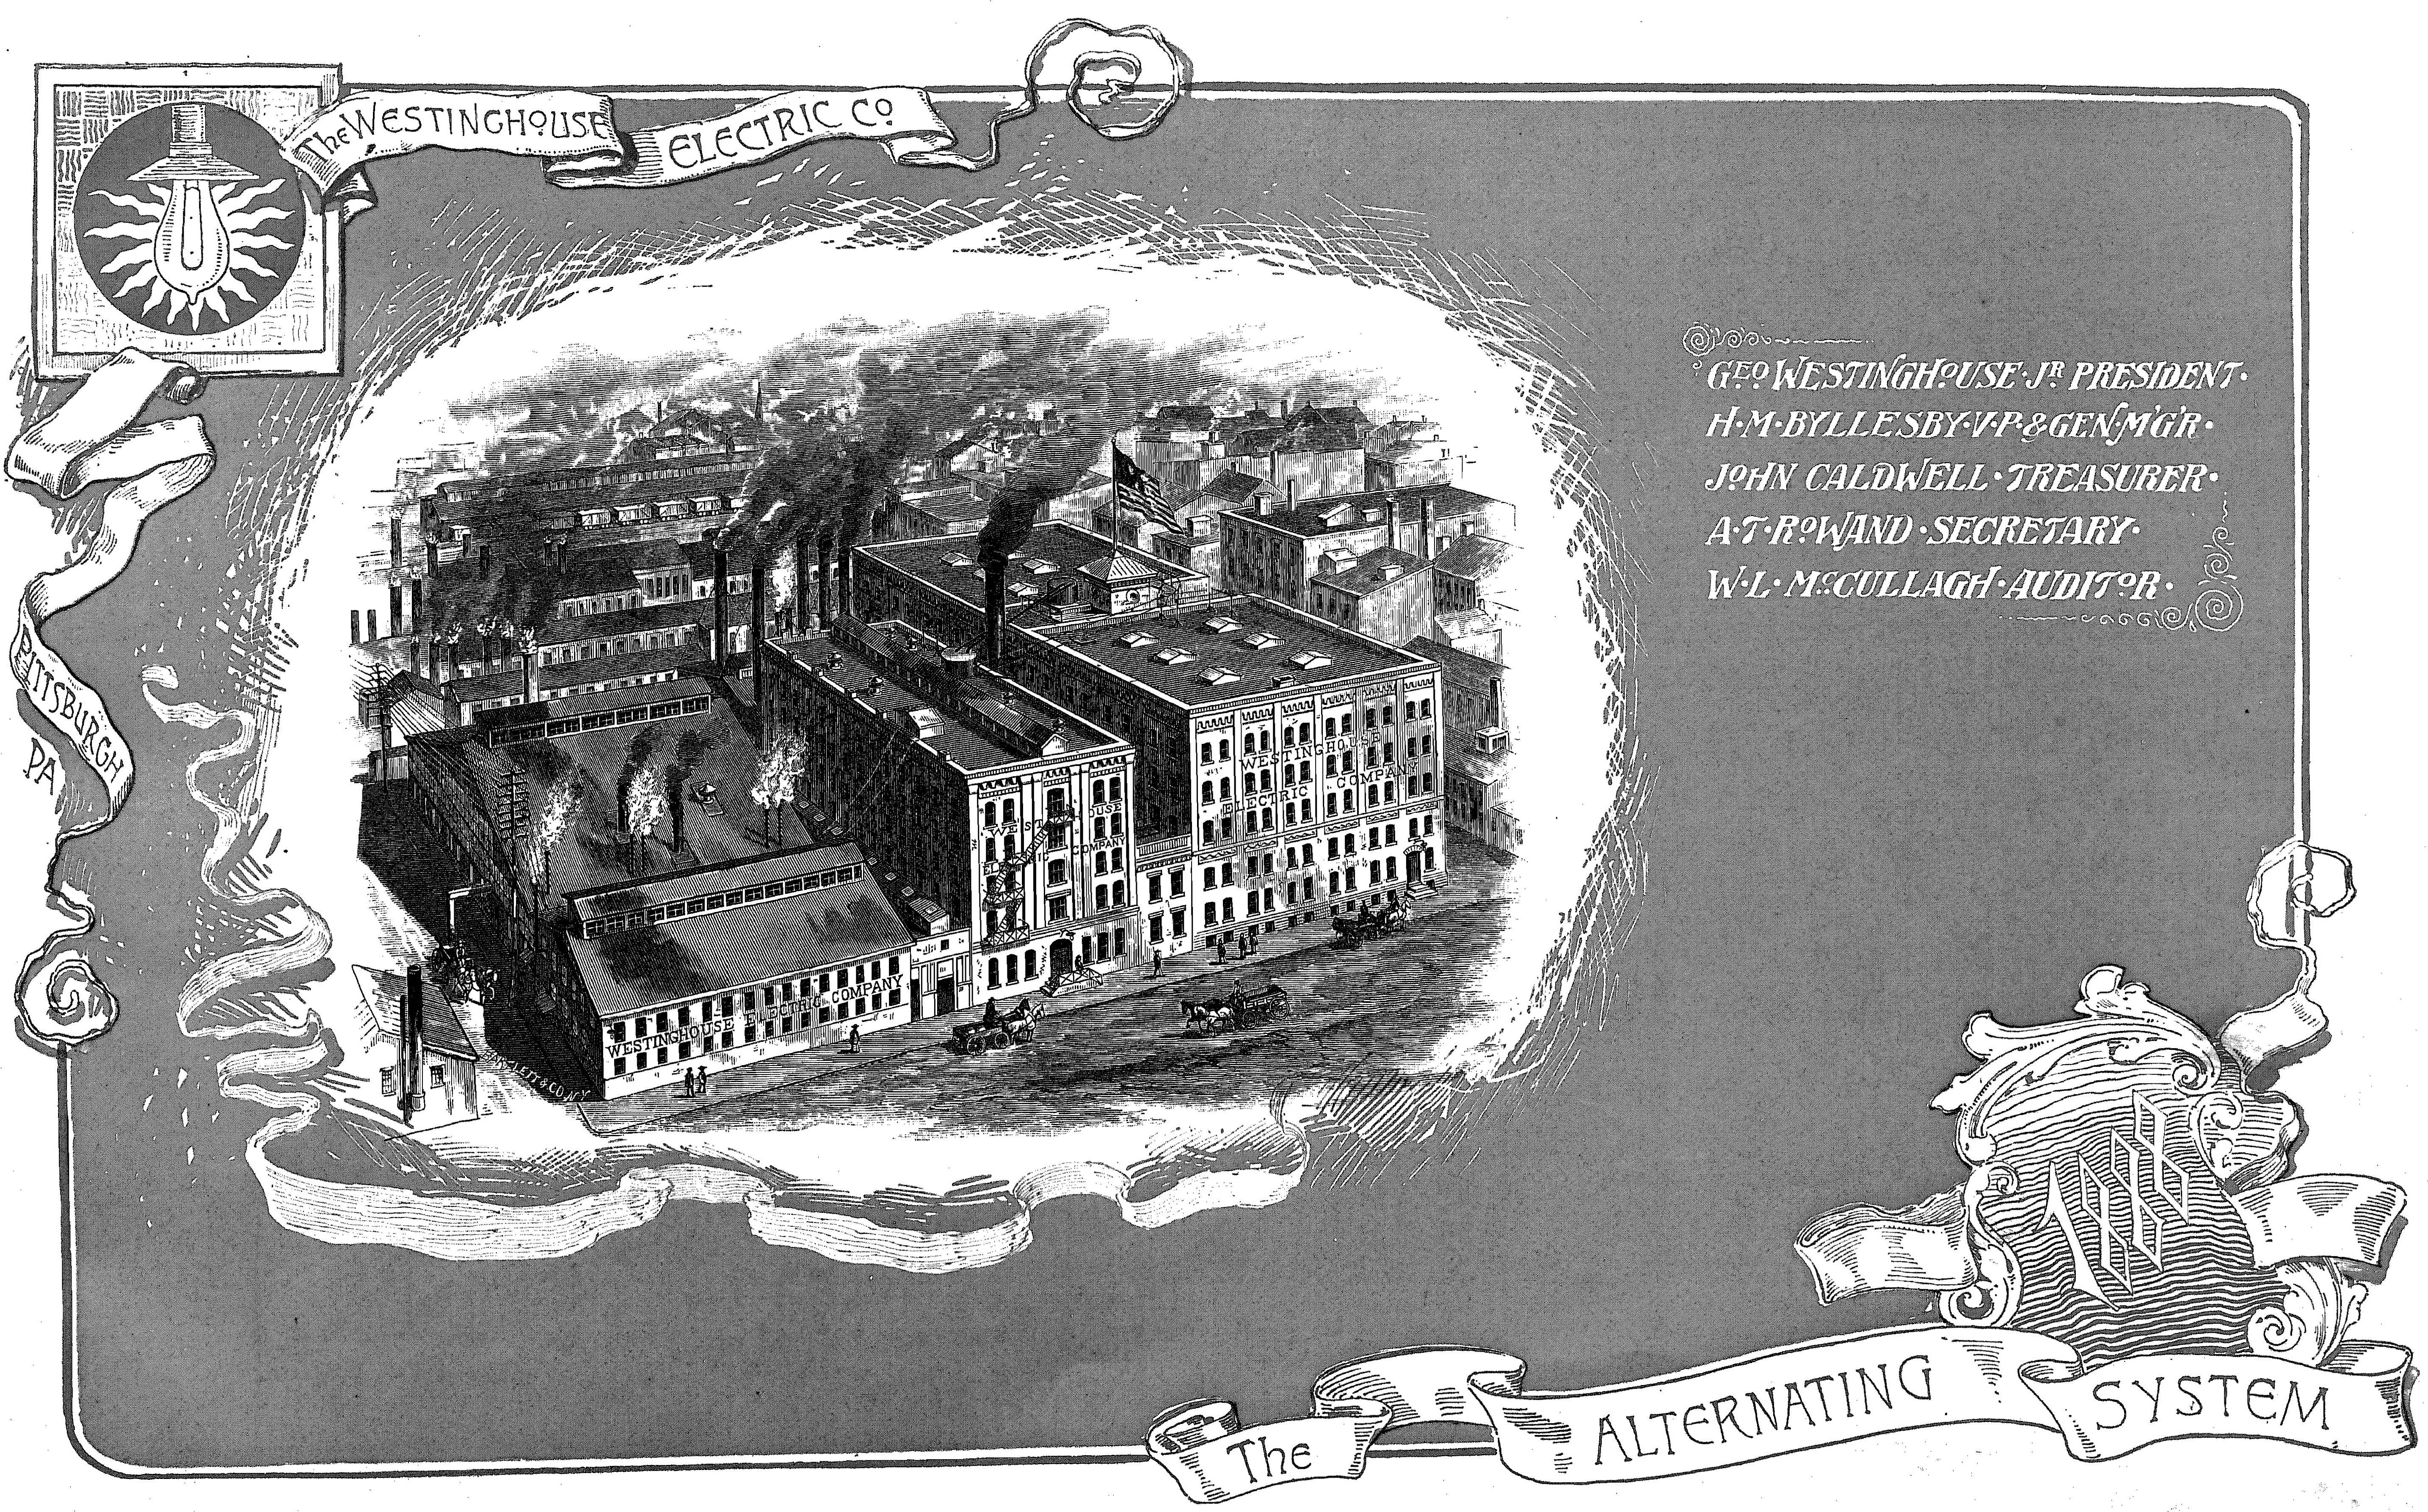 FileWestinghouse Electric Company 1888 cataloguejpg